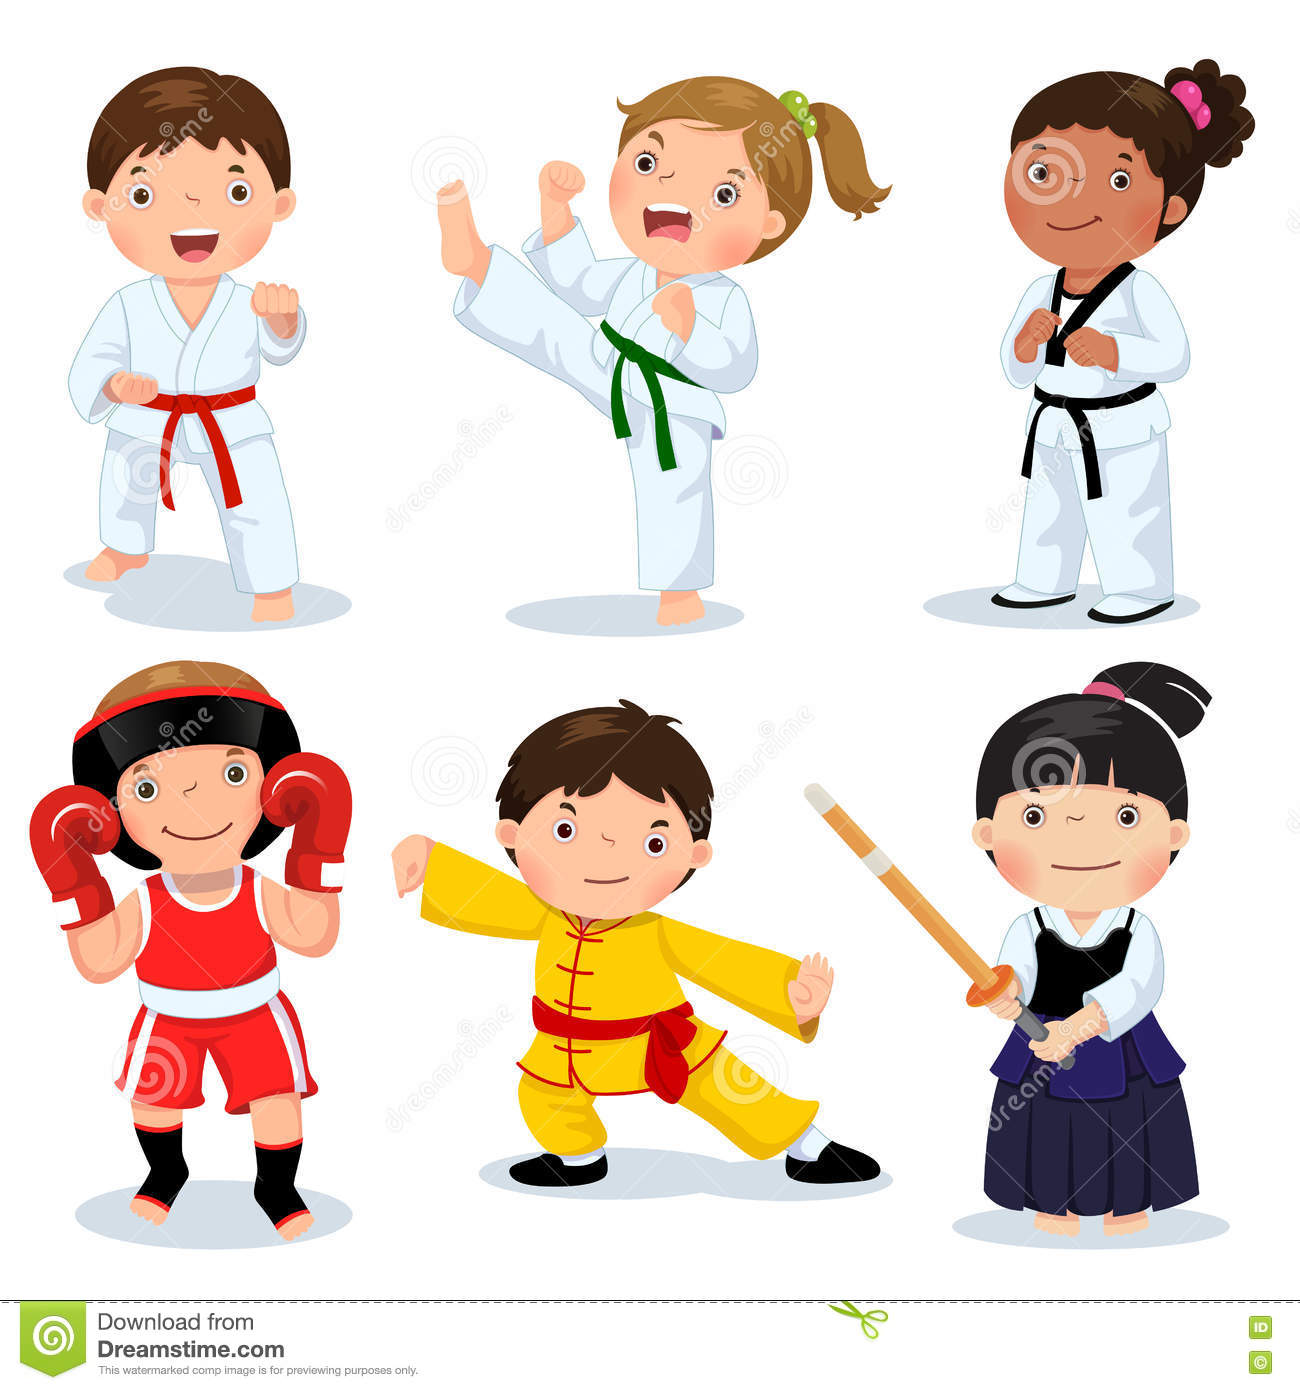 How to Choose a Martial Art